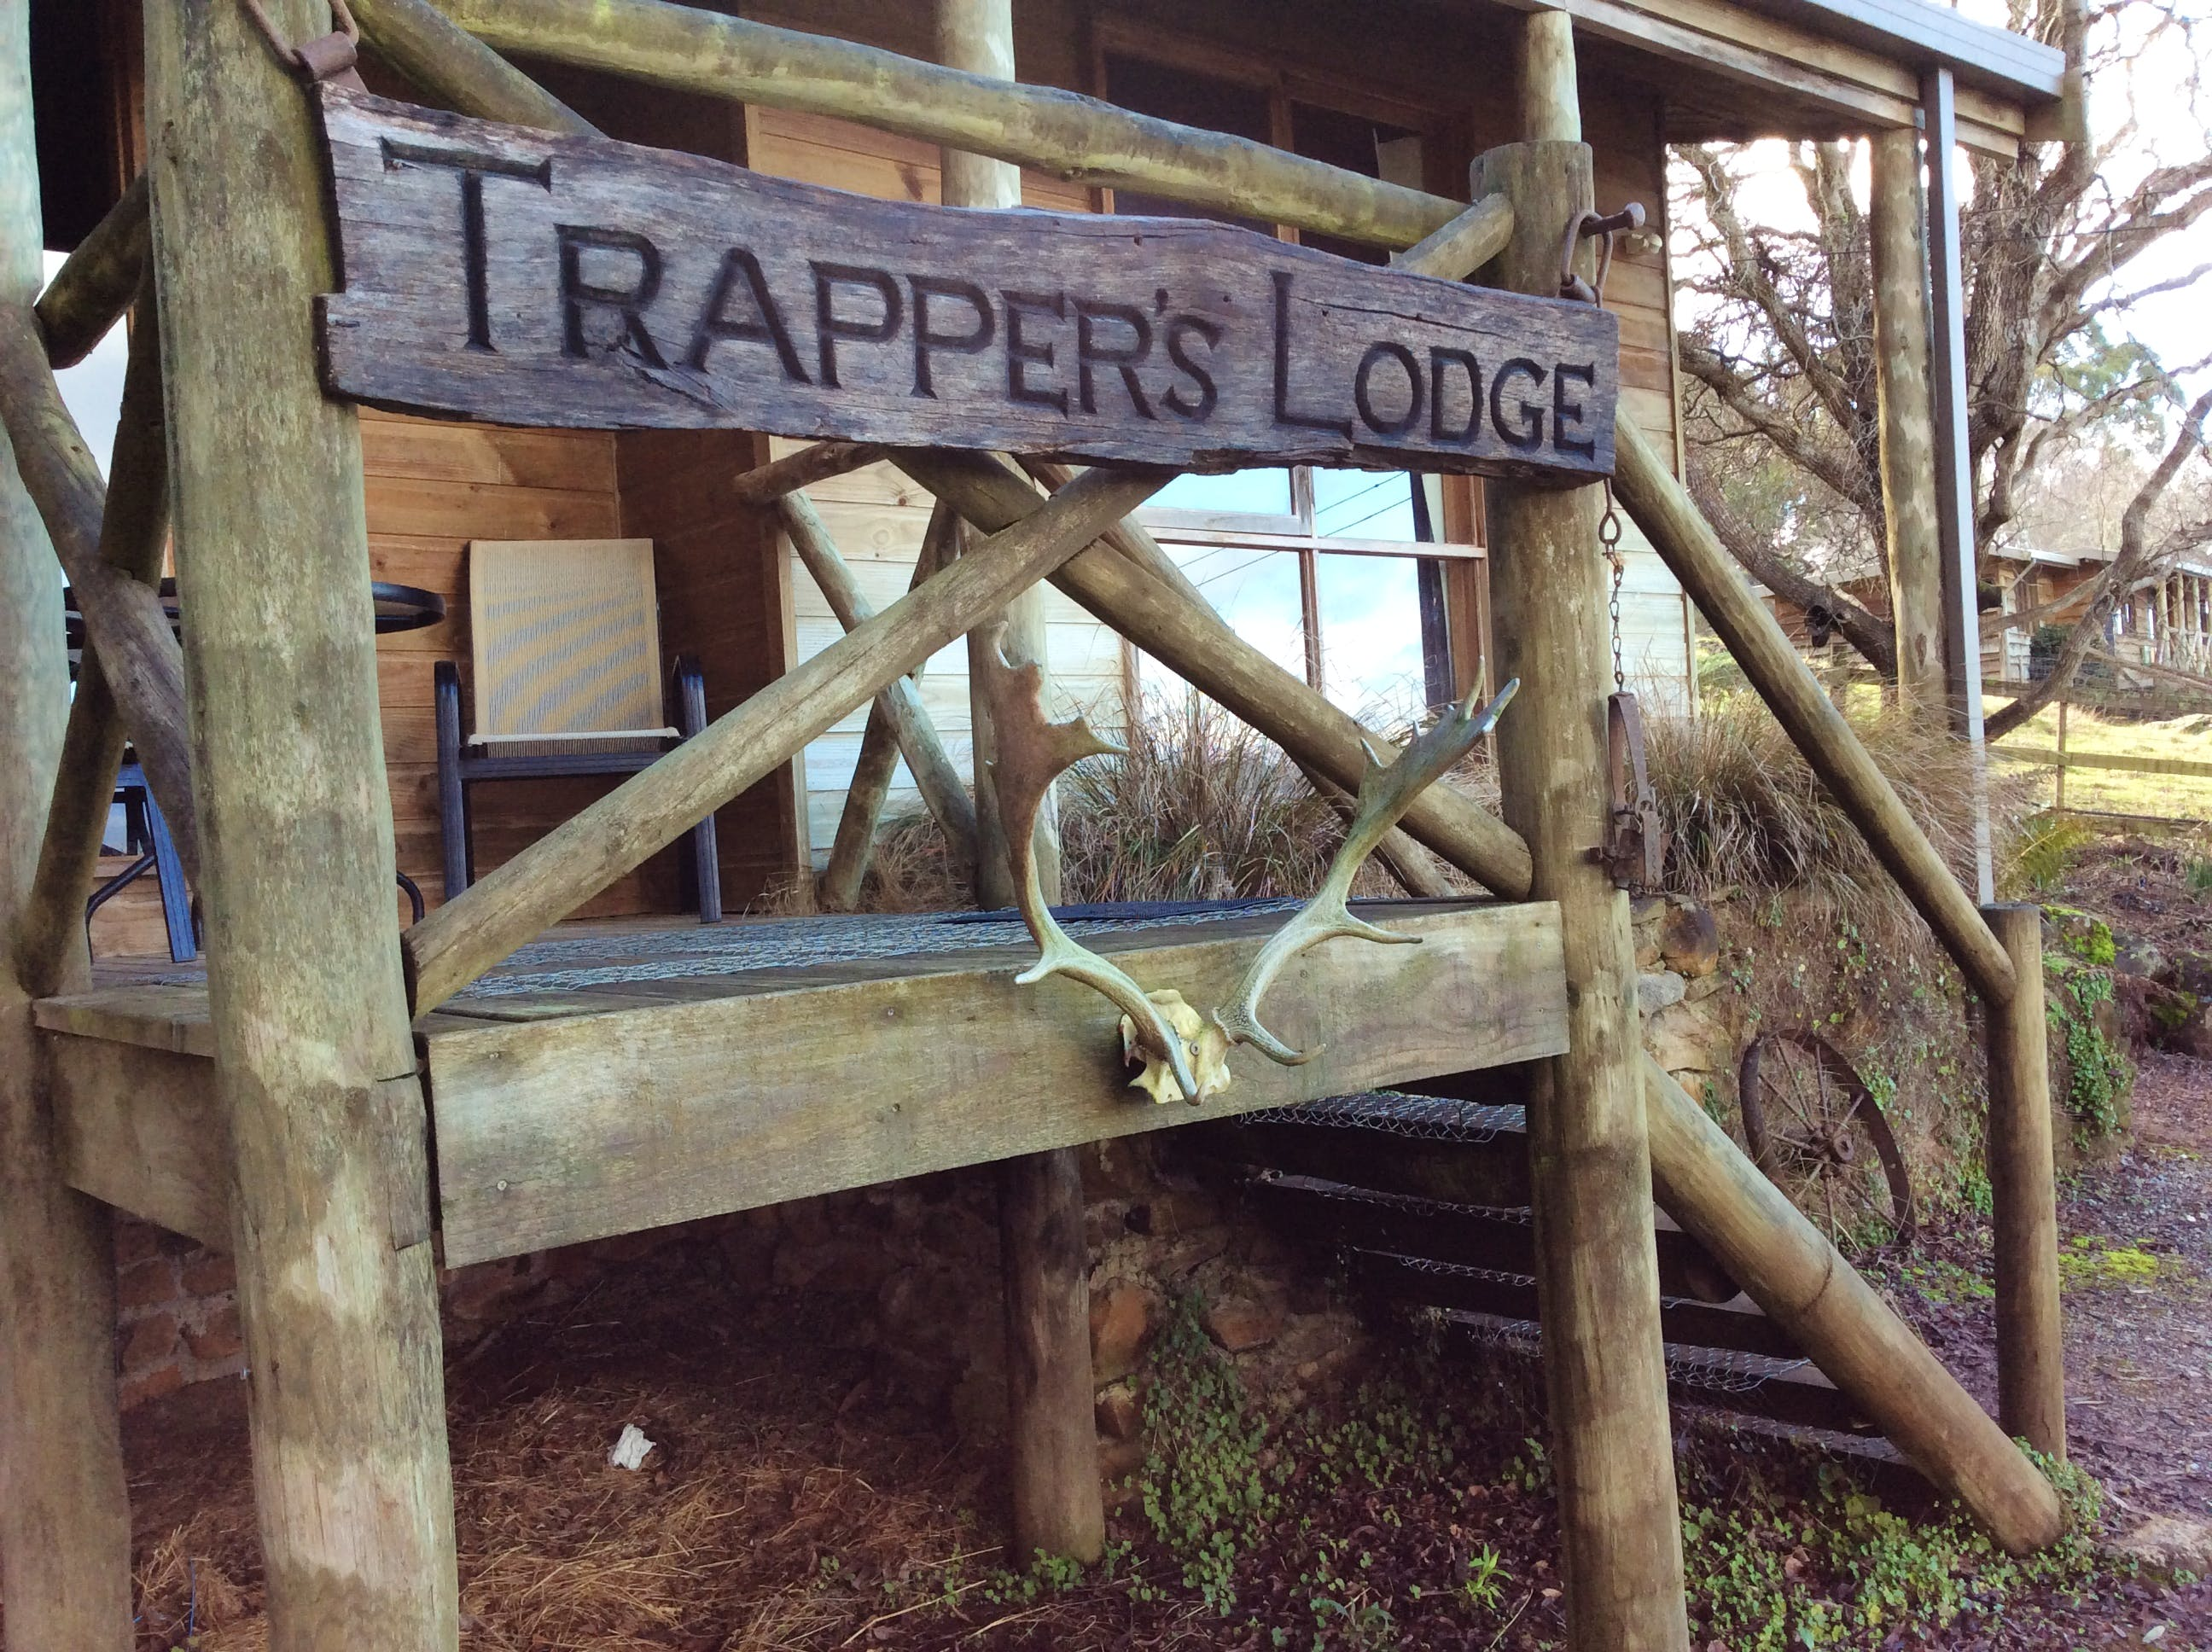 Trappers Lodge self-contained 4 bedroom house at Mole Creek Holiday Village